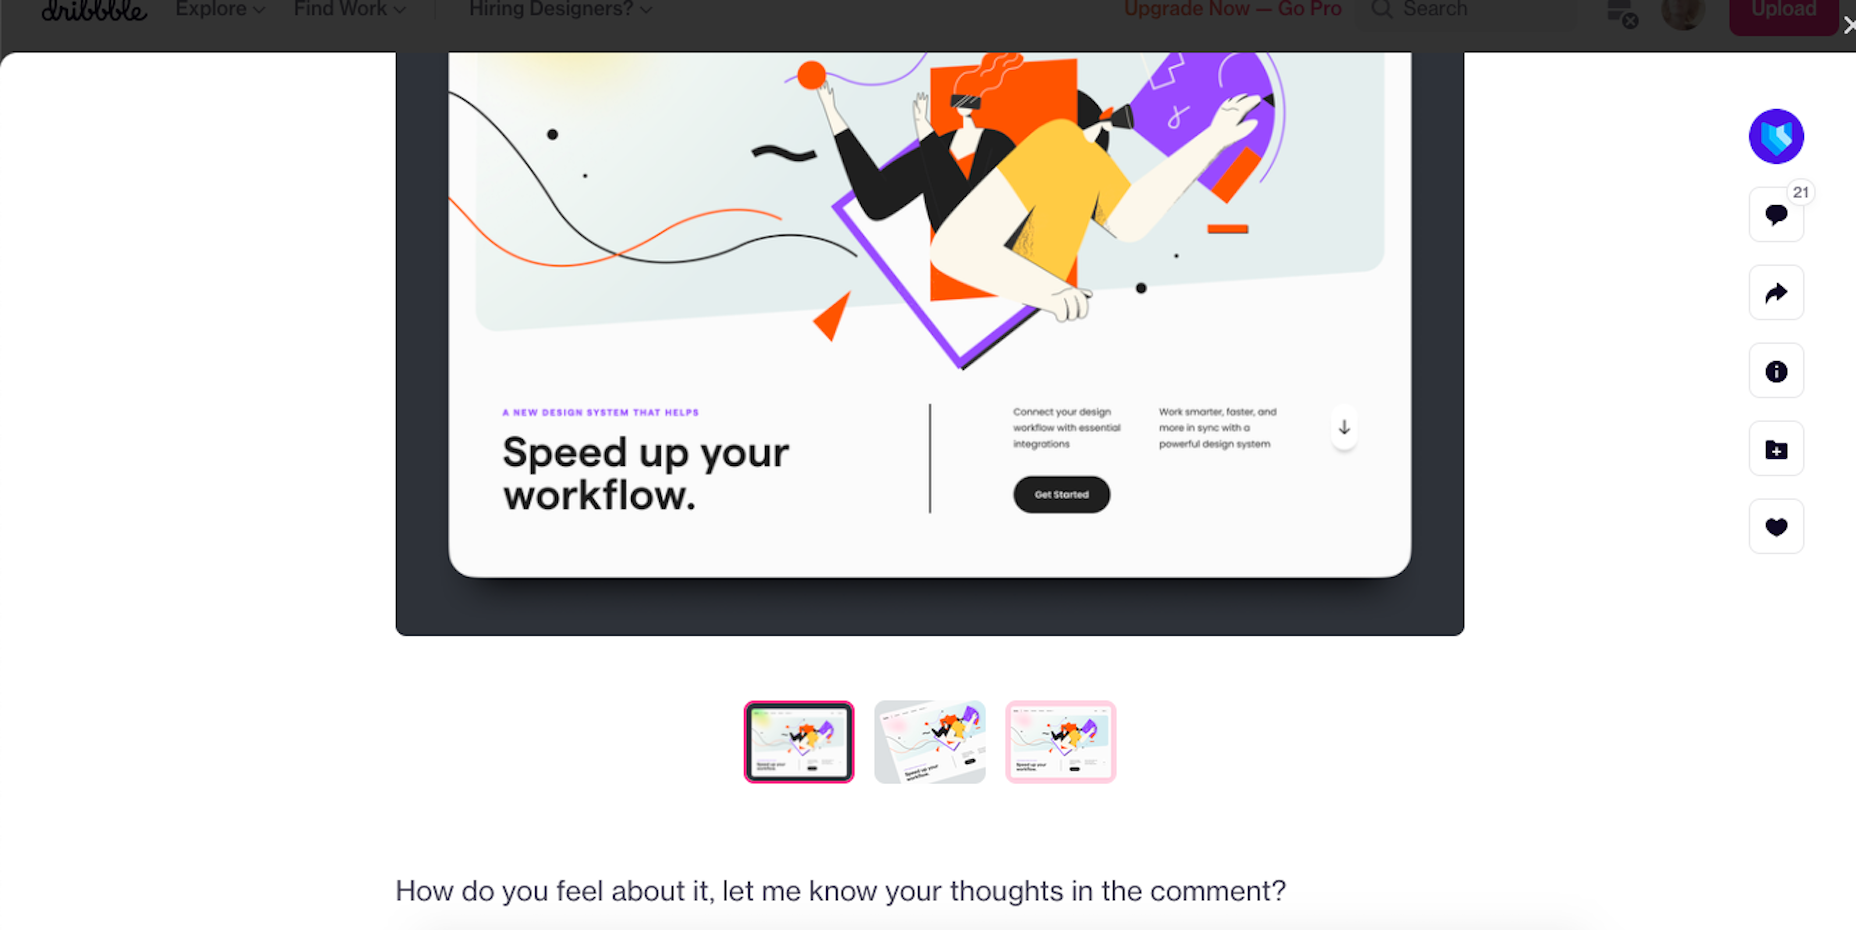 Design agency UI8 asks Dribbble users for feedback